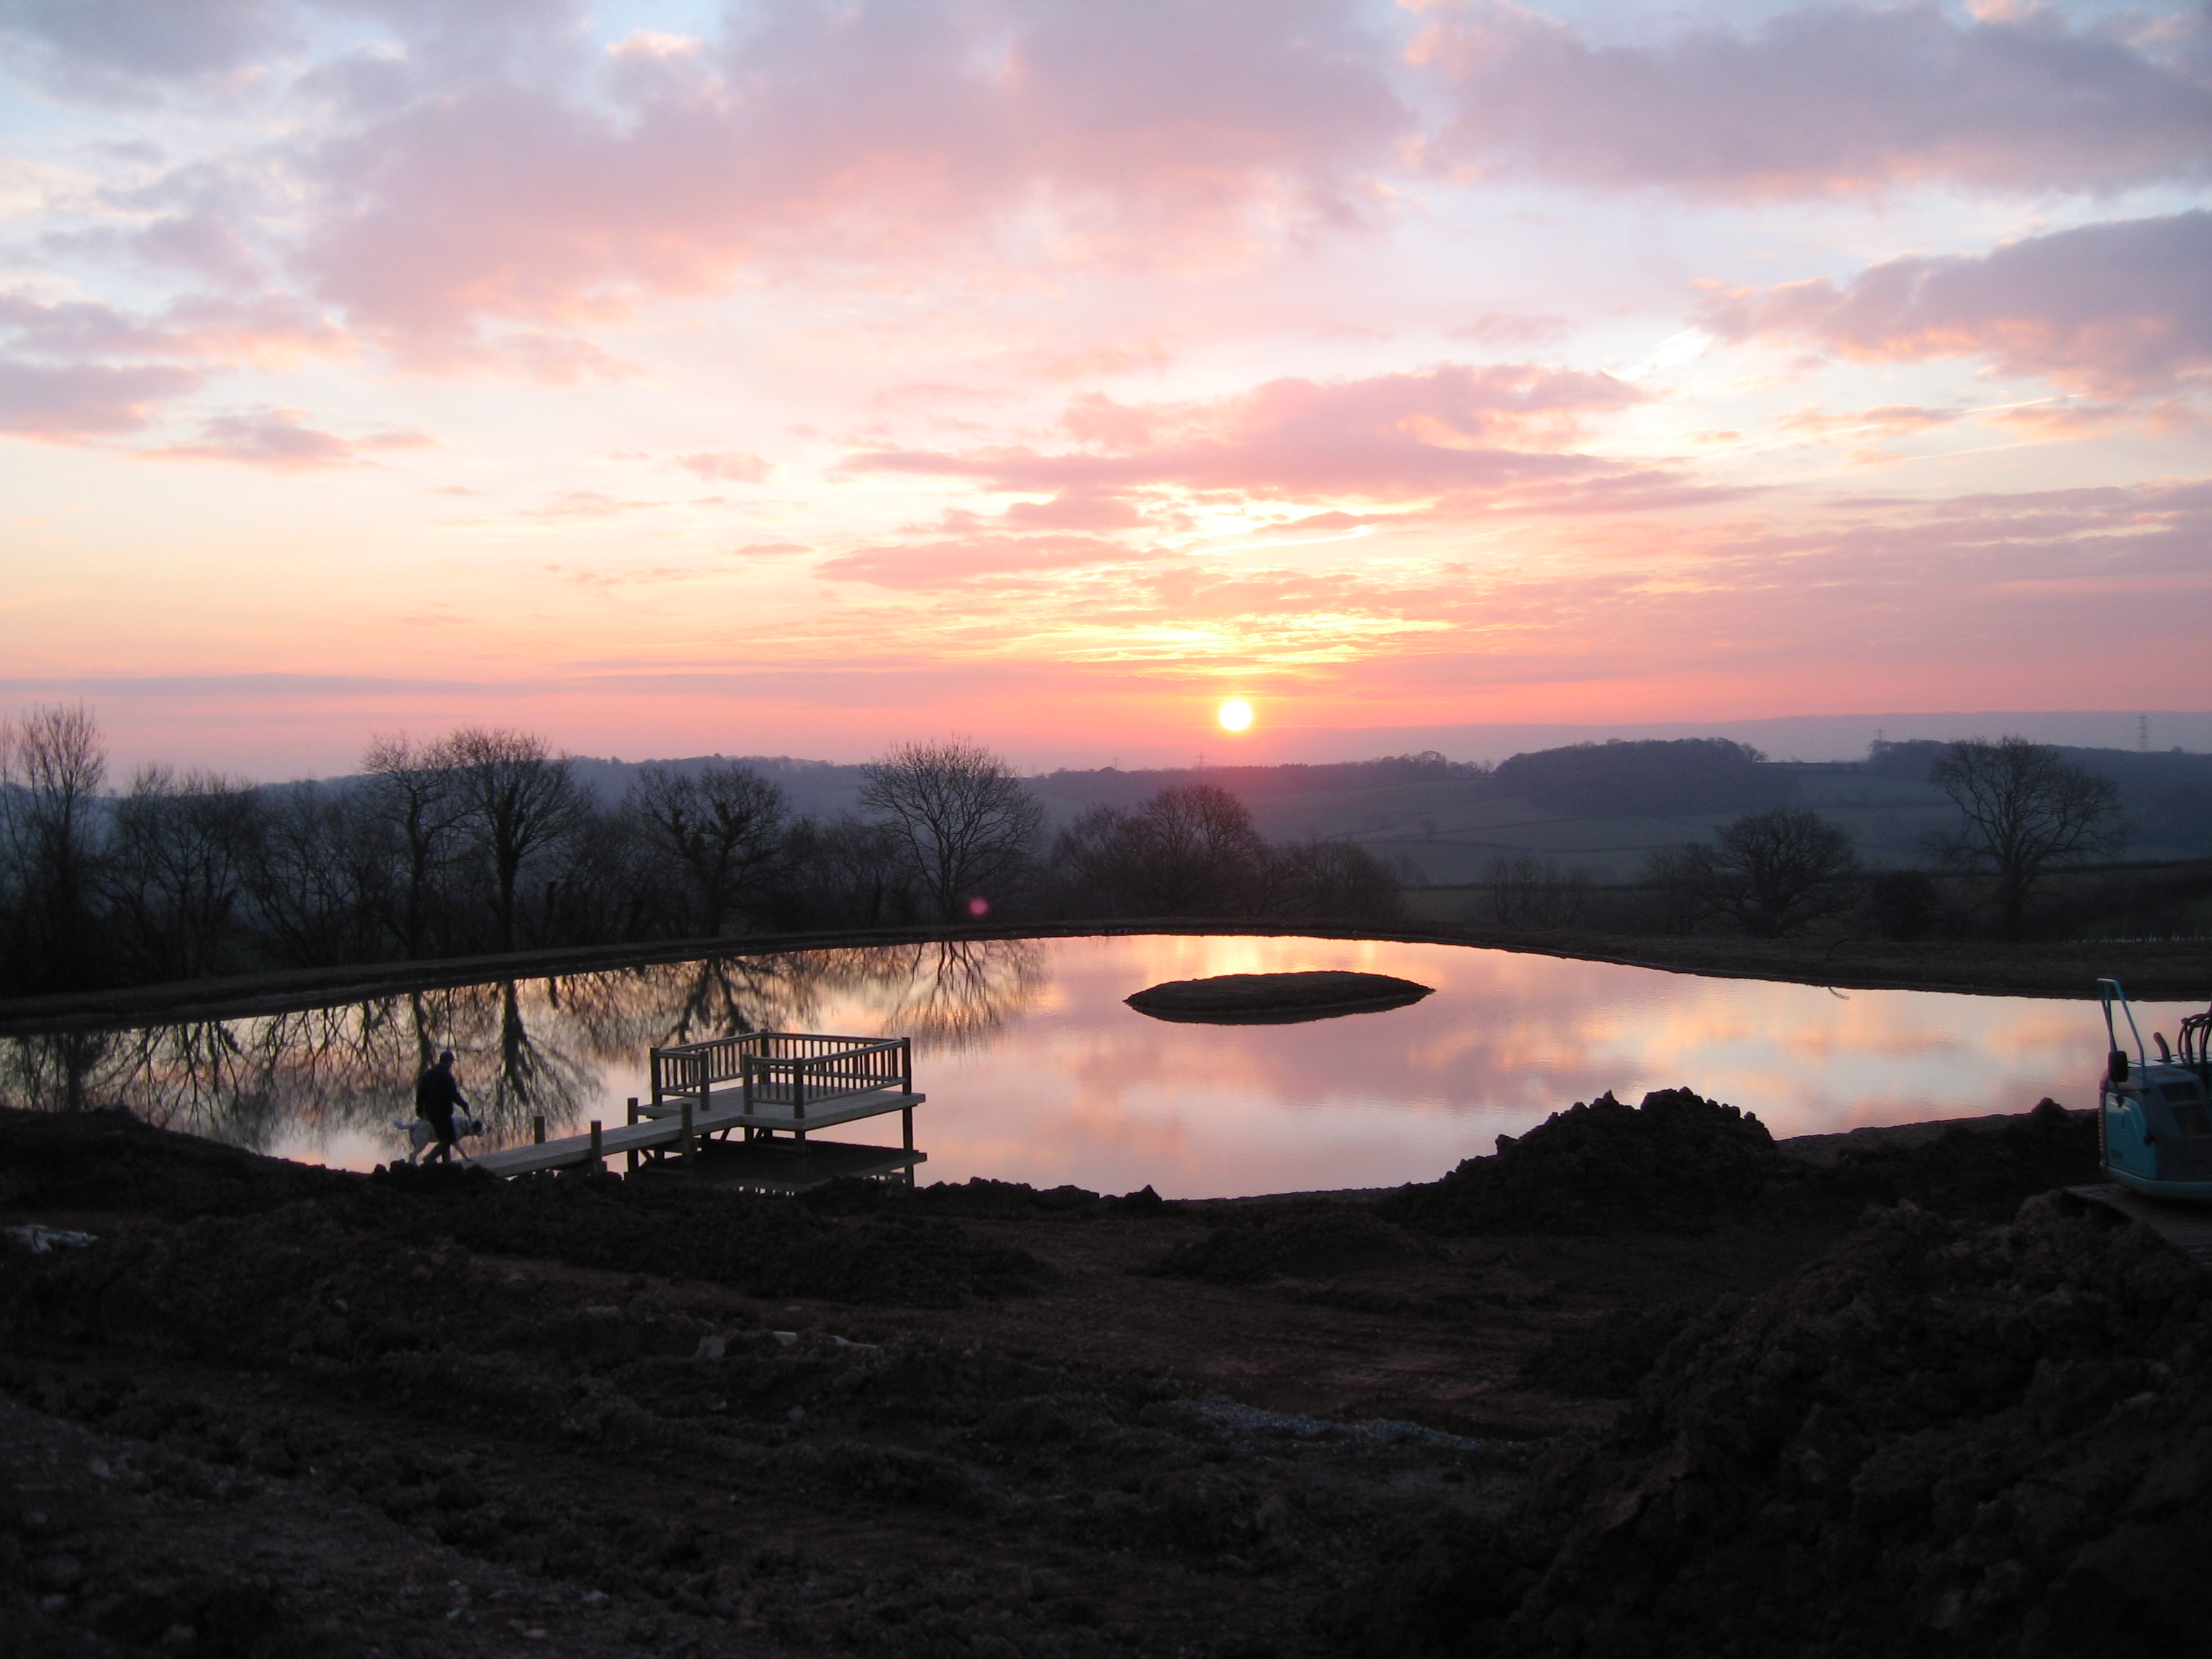 Sunrise over lake constructed in Bathelton Somerset